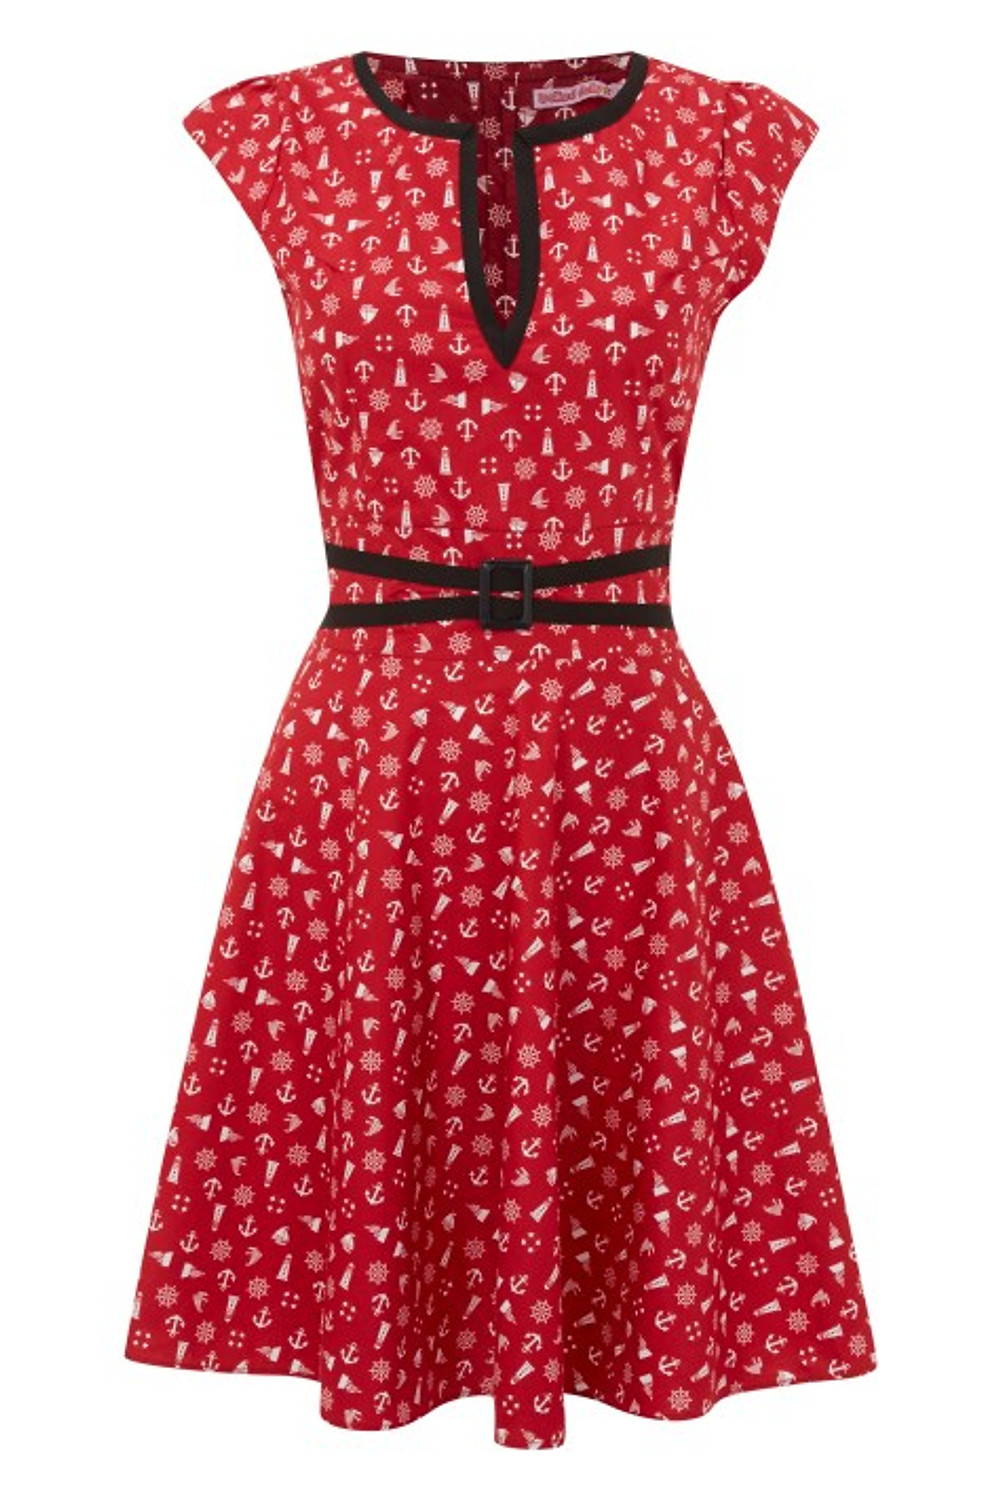 244 - Flared Buckle Dress - Red Nautical - FRONT